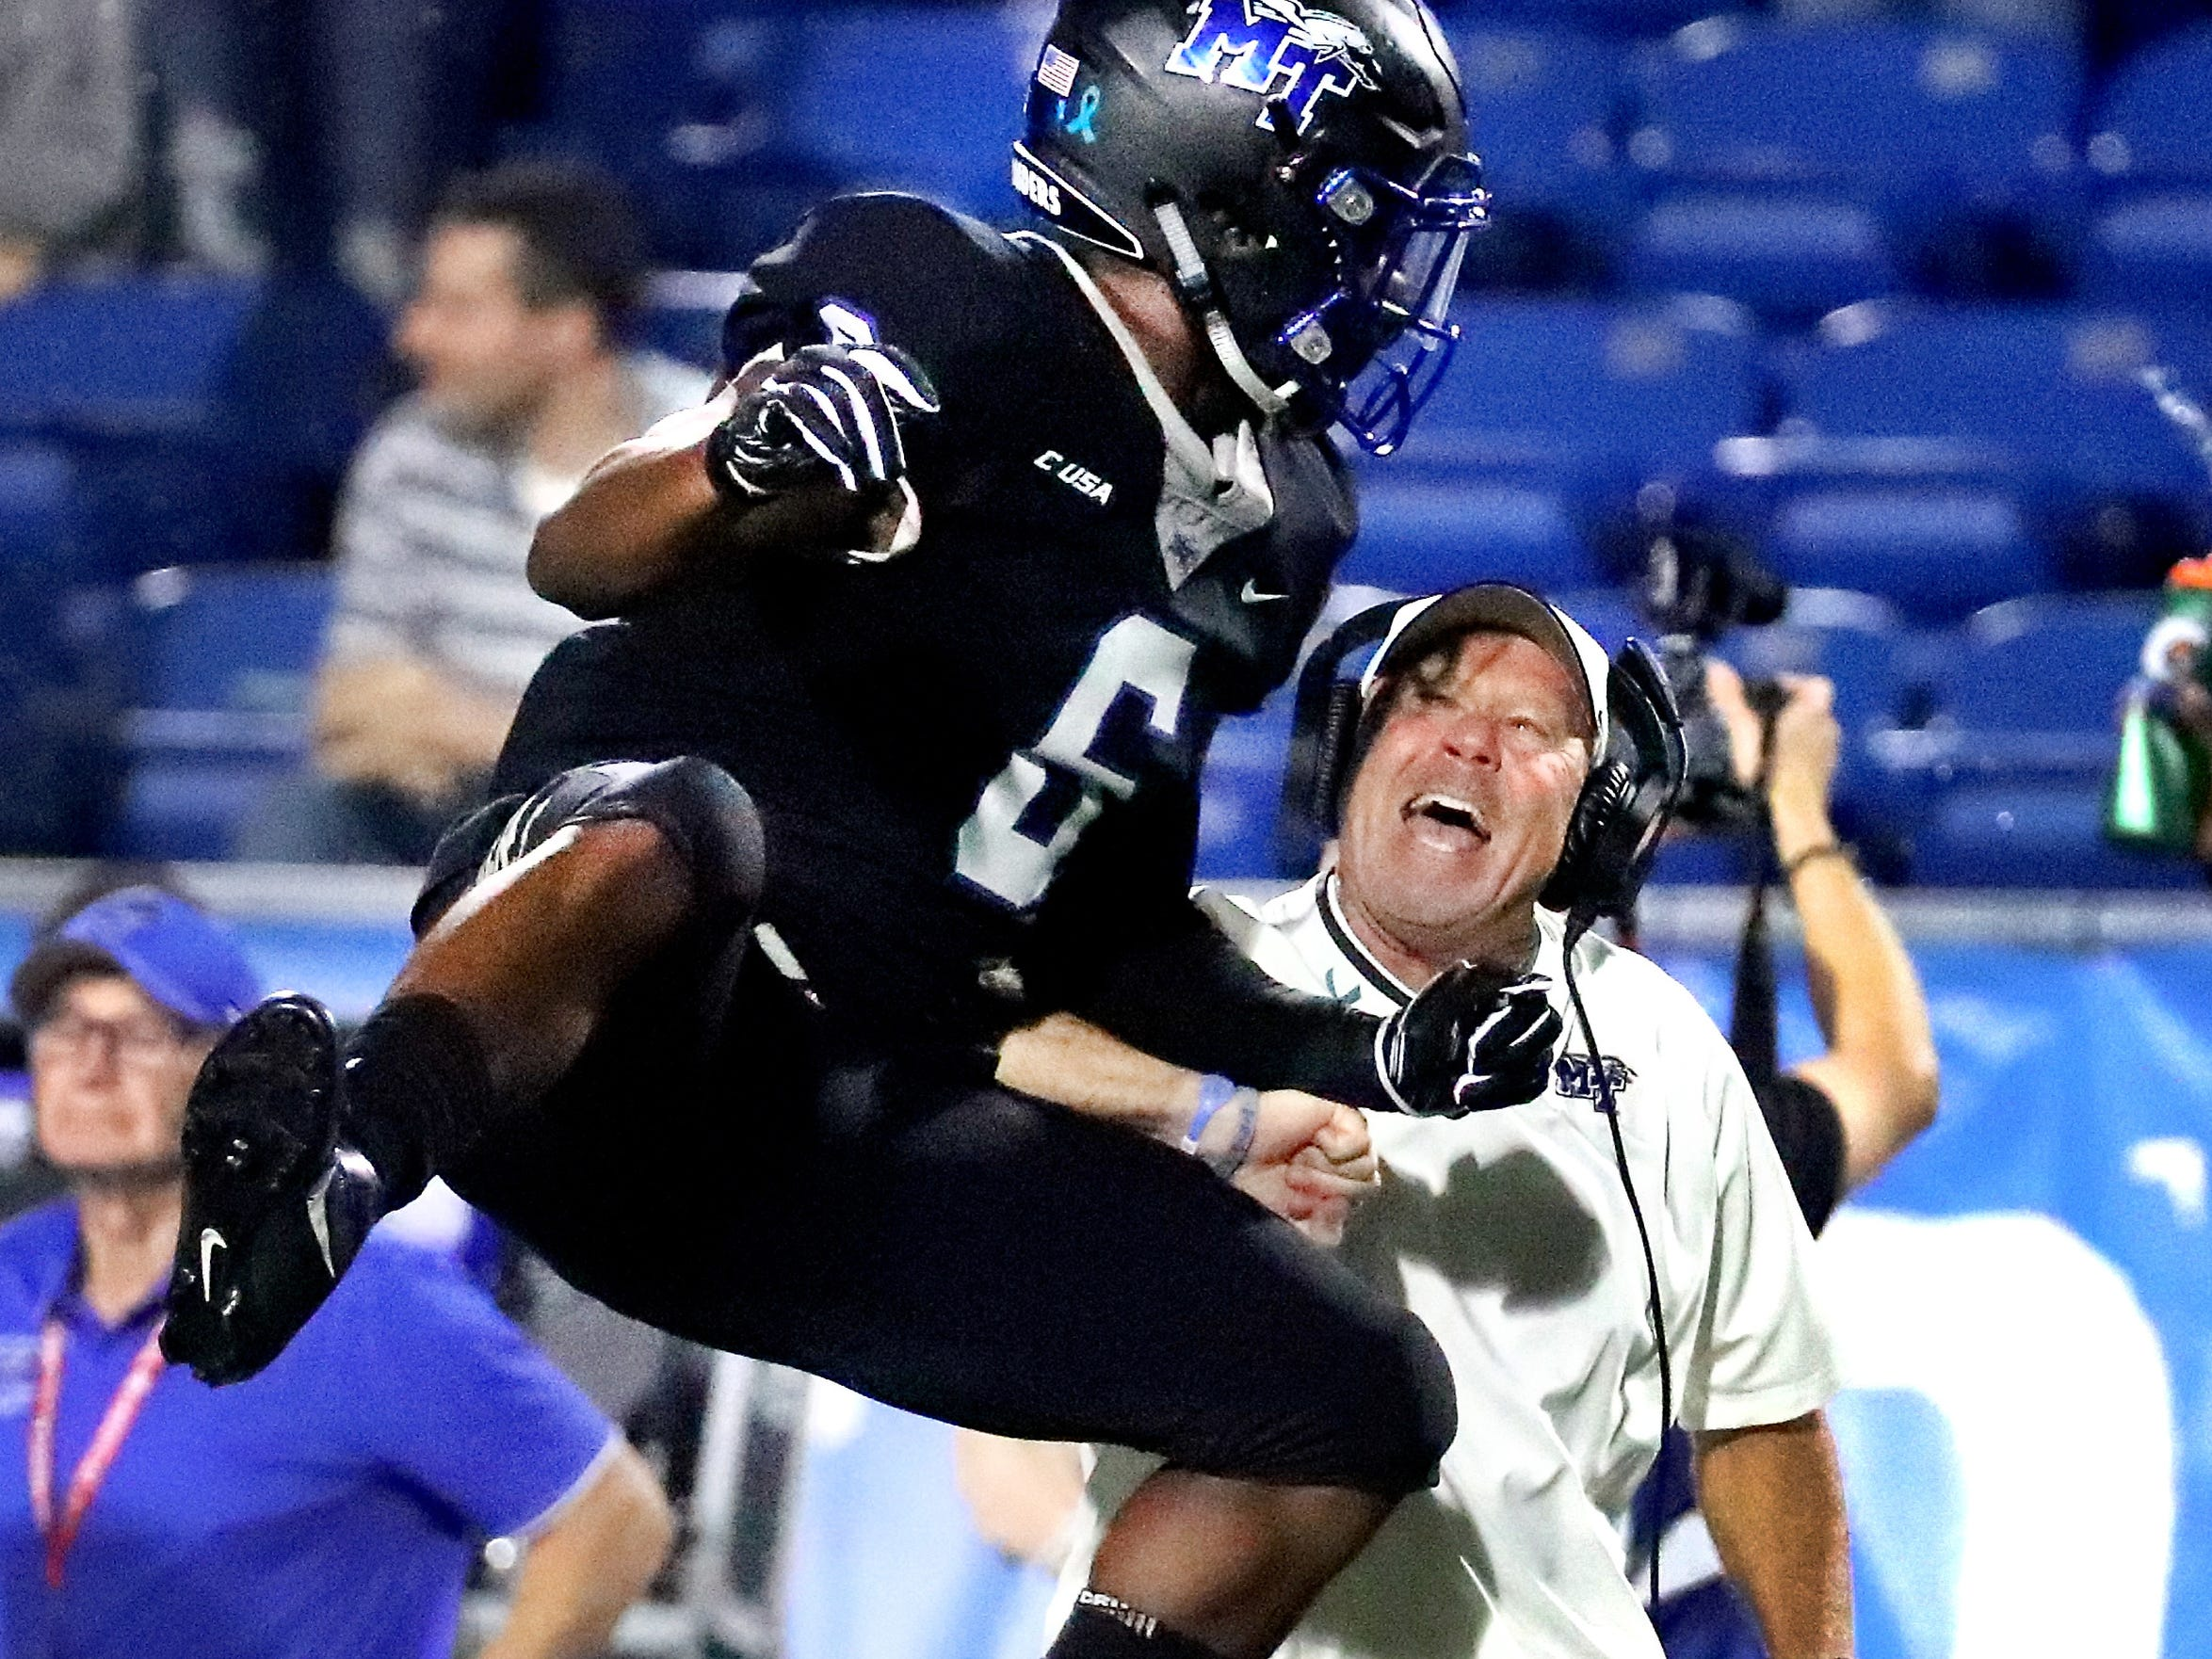 MTSU's head coach Rick Stockstill celebrates an interception against FAU made by Jovante Moffatt (7) with Khalil Brooks (6) on the sidelines in the final seconds of the game at MTSU, on Saturday, Sept. 29, 2018.